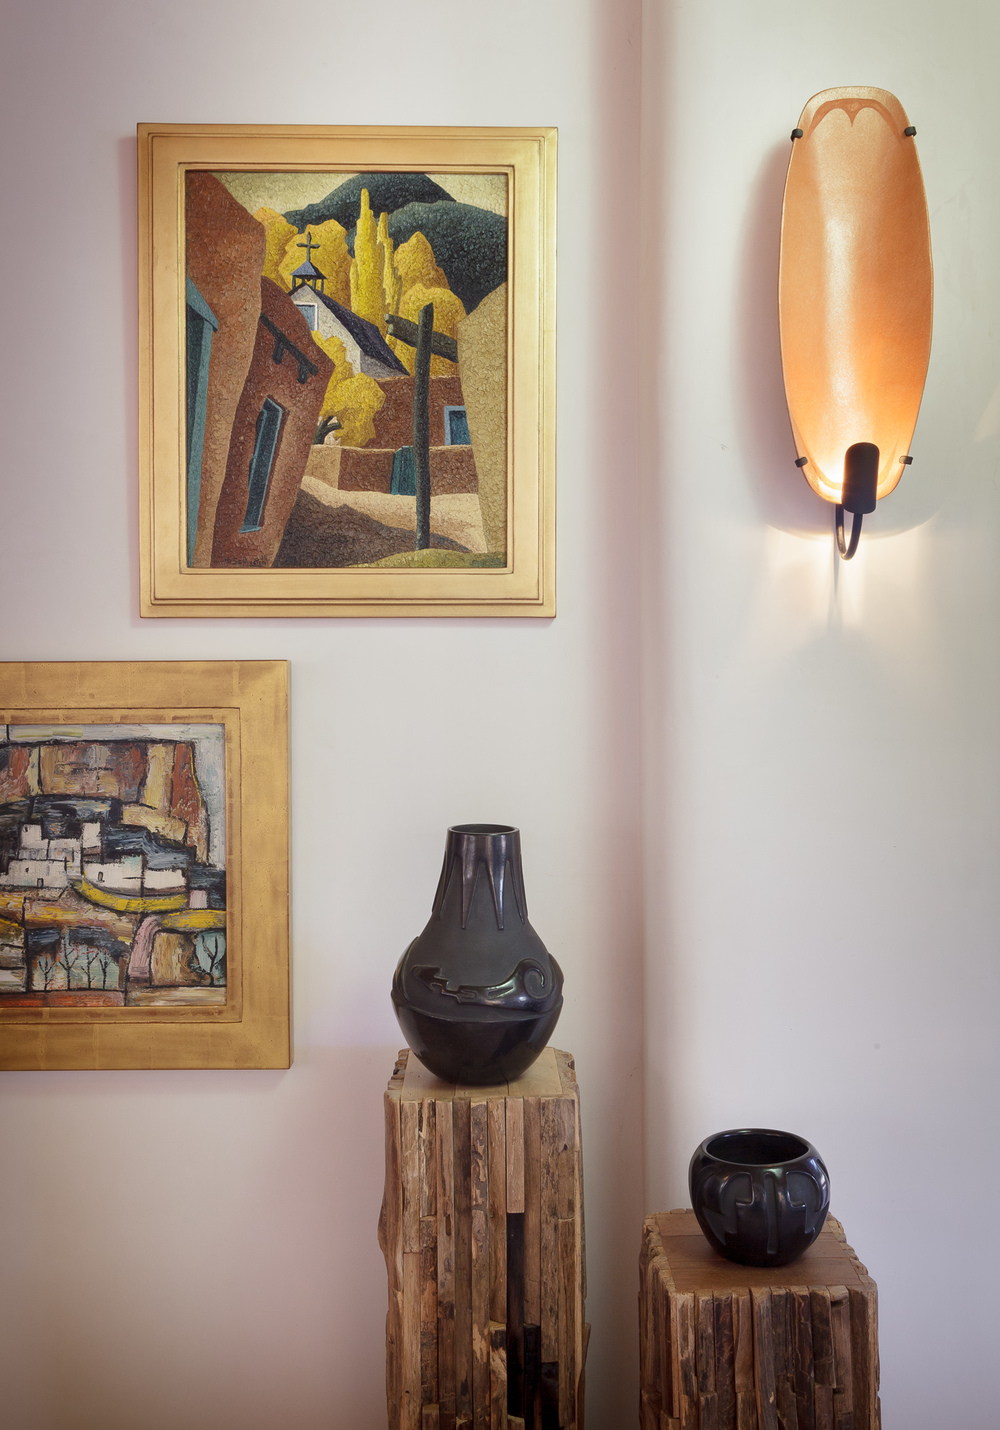 Artwork Interiors, Santa Fe, Aspen, Interior design, decoration